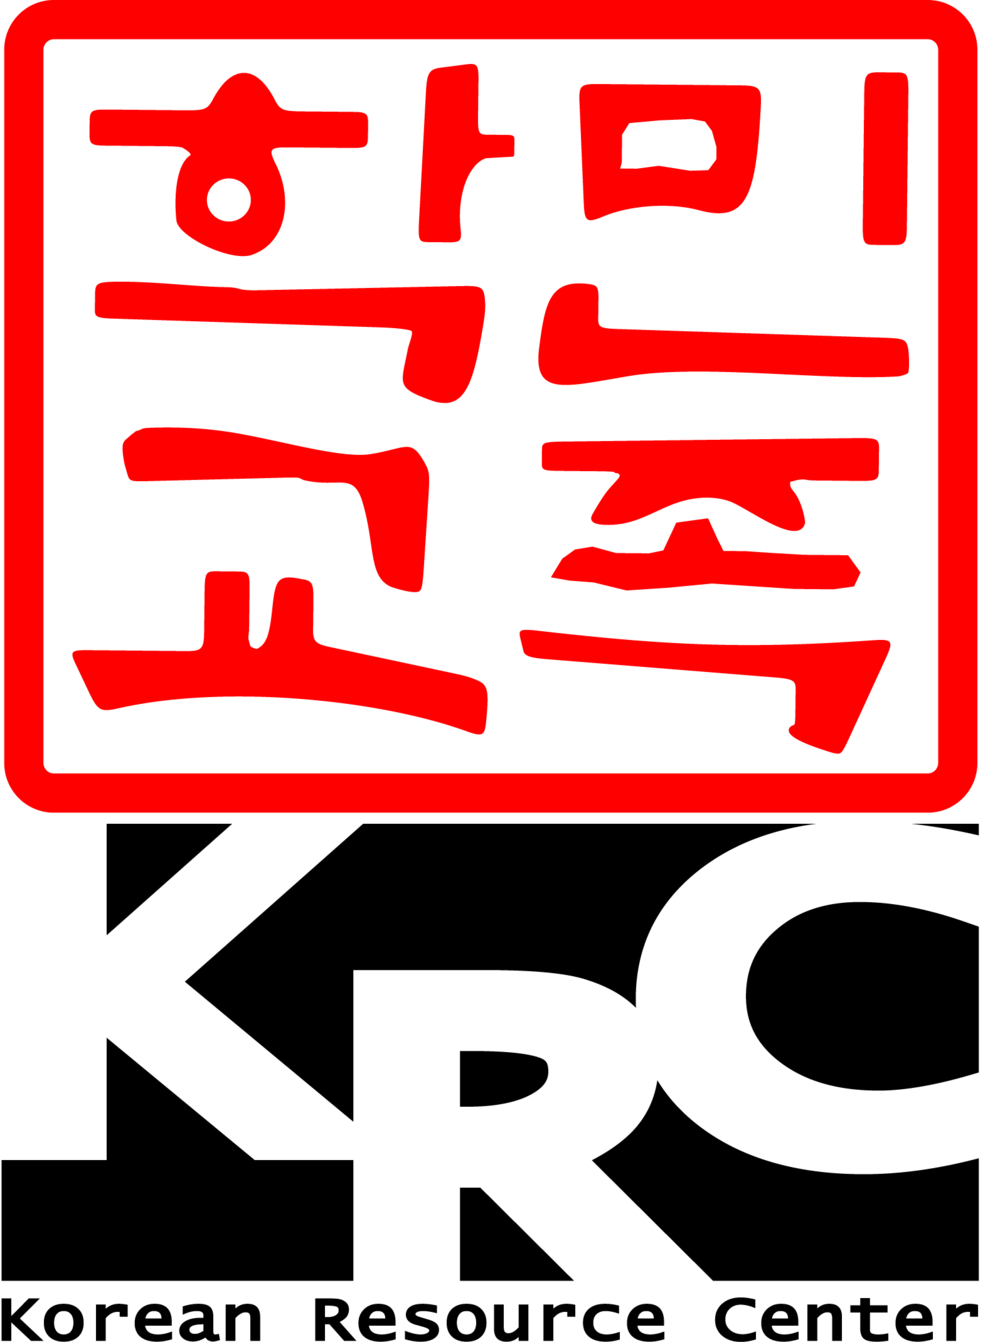 krc_logo_-_red_on_black_large.png